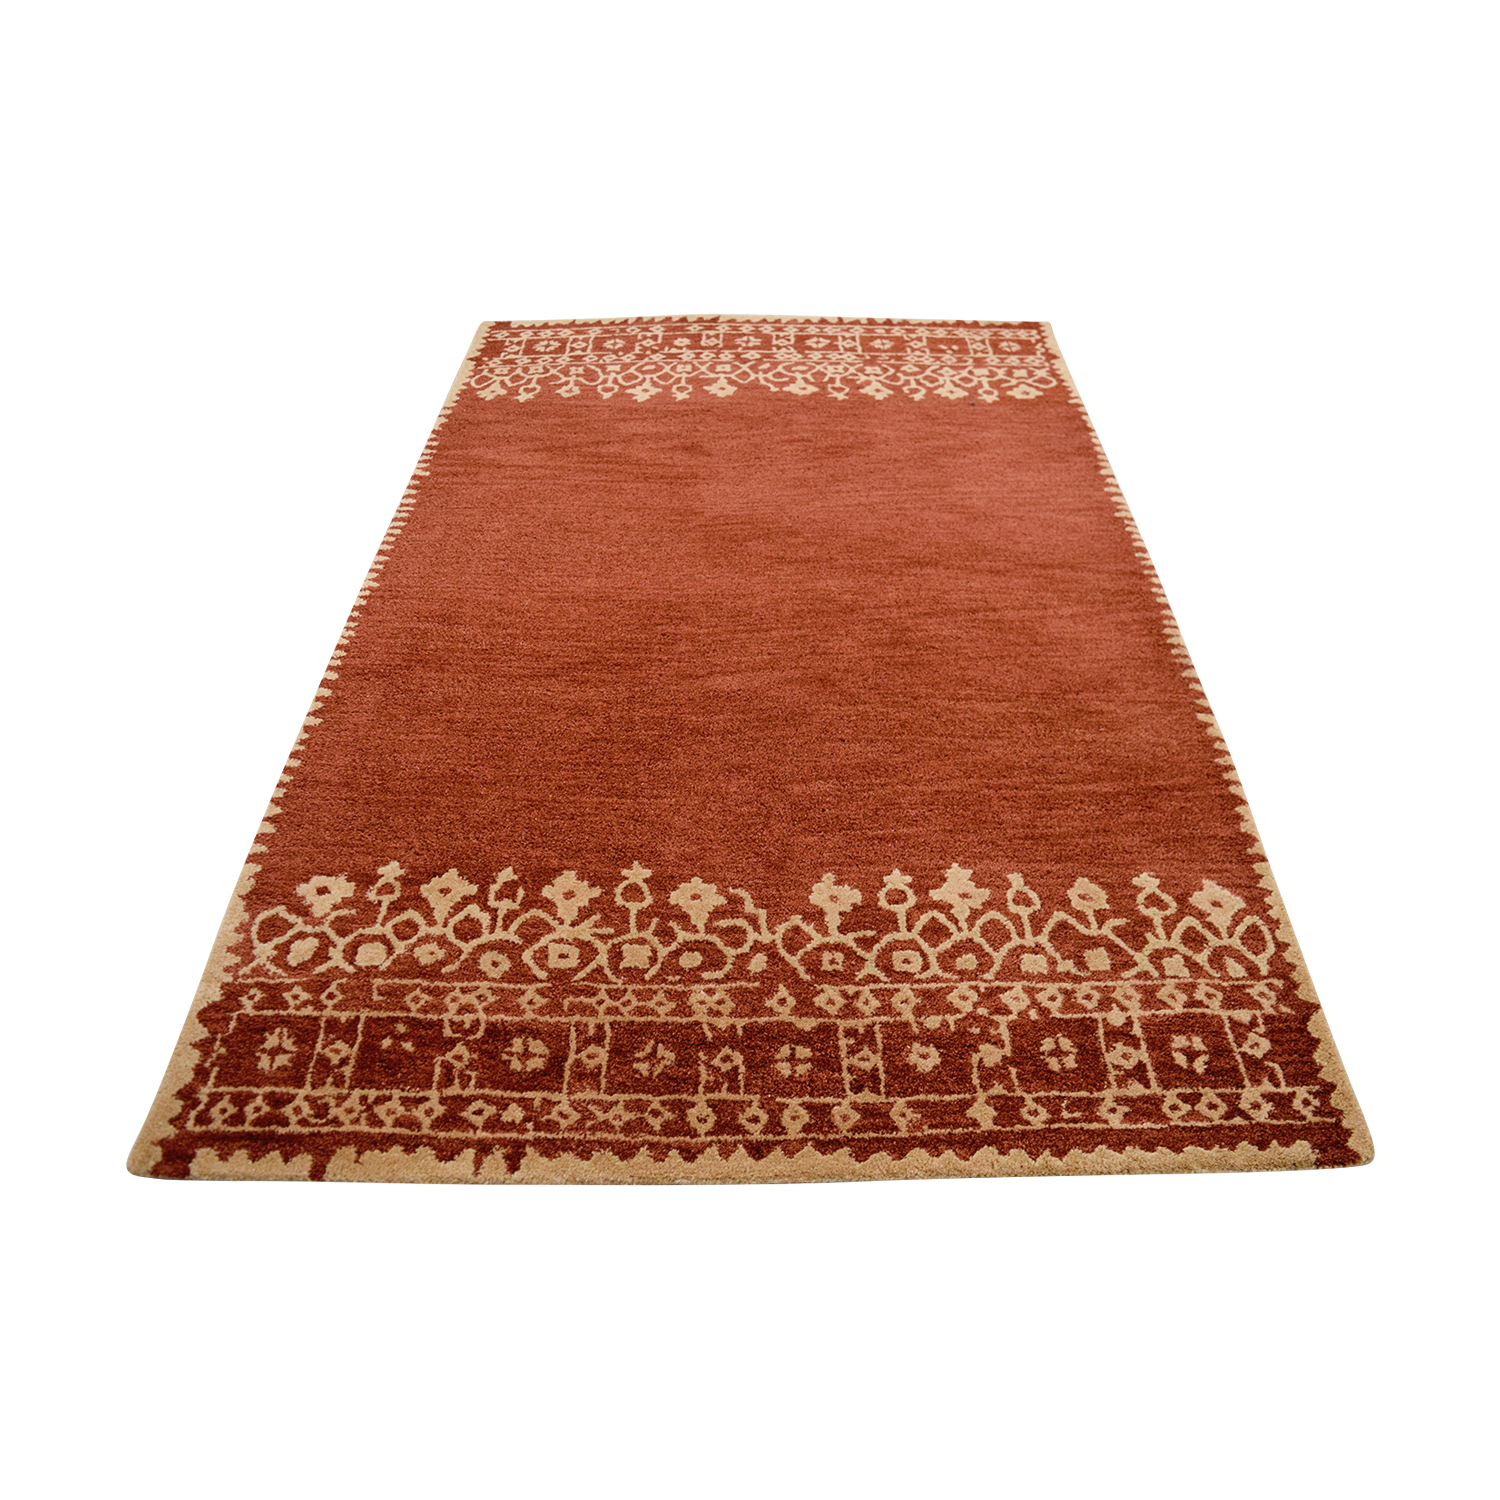 buy Pottery Barn Desa Bordered Tan and Red Wool Rug Pottery Barn Rugs